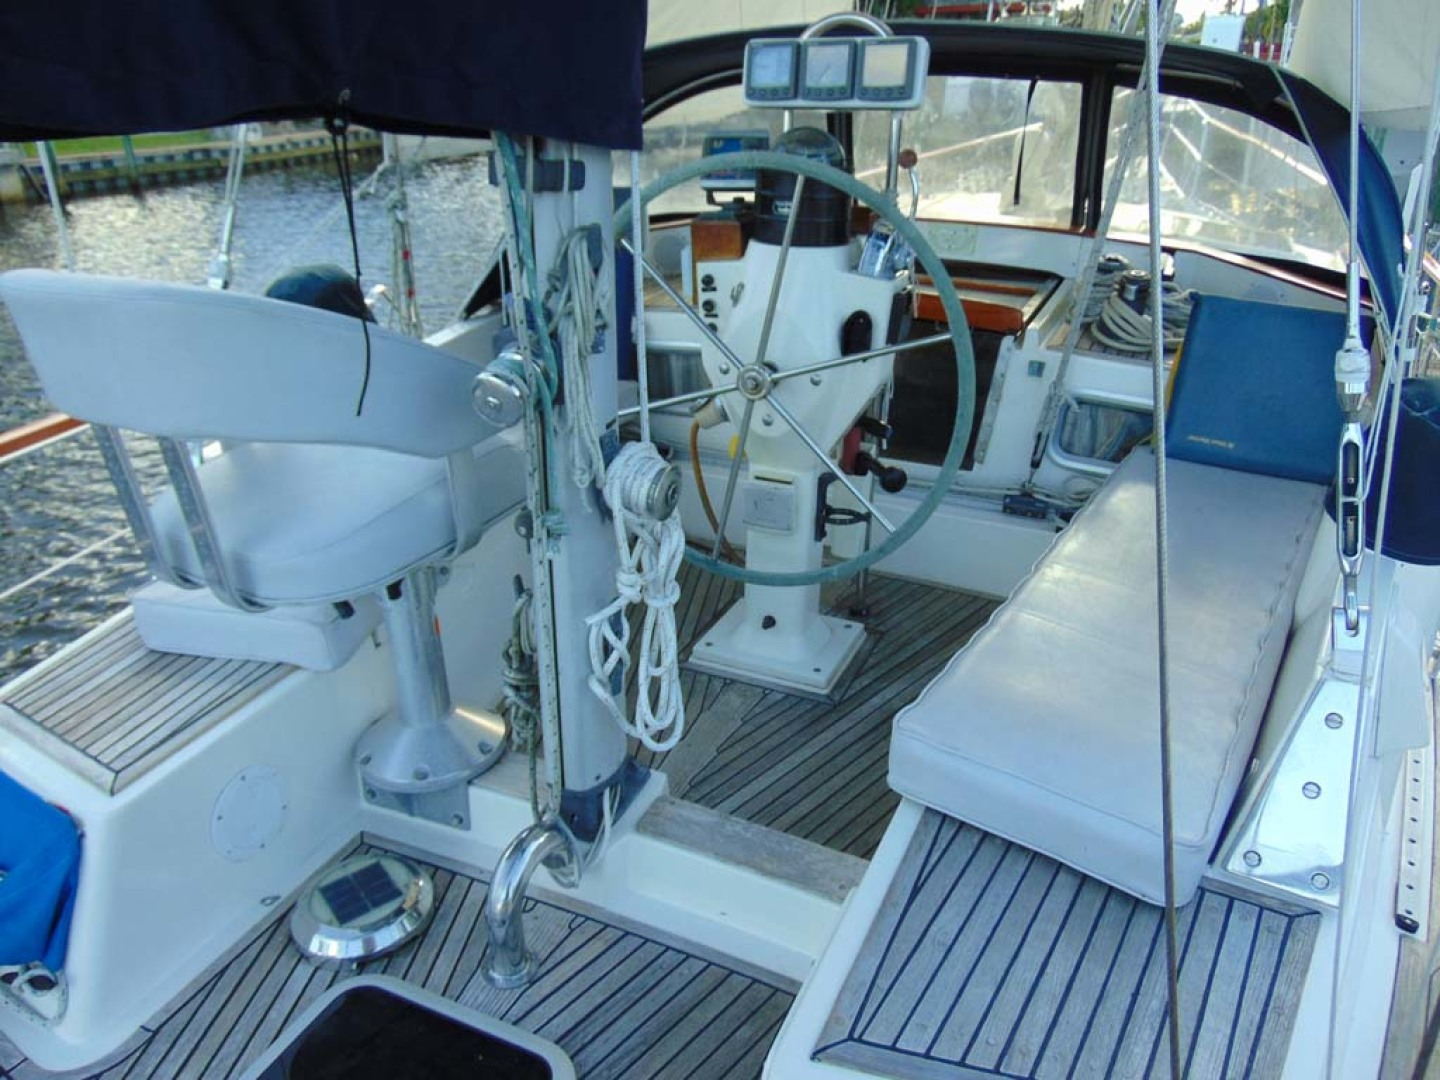 Nauticat-40 1985-Aurora Palm City-Florida-United States-Cockpit-1070730 | Thumbnail